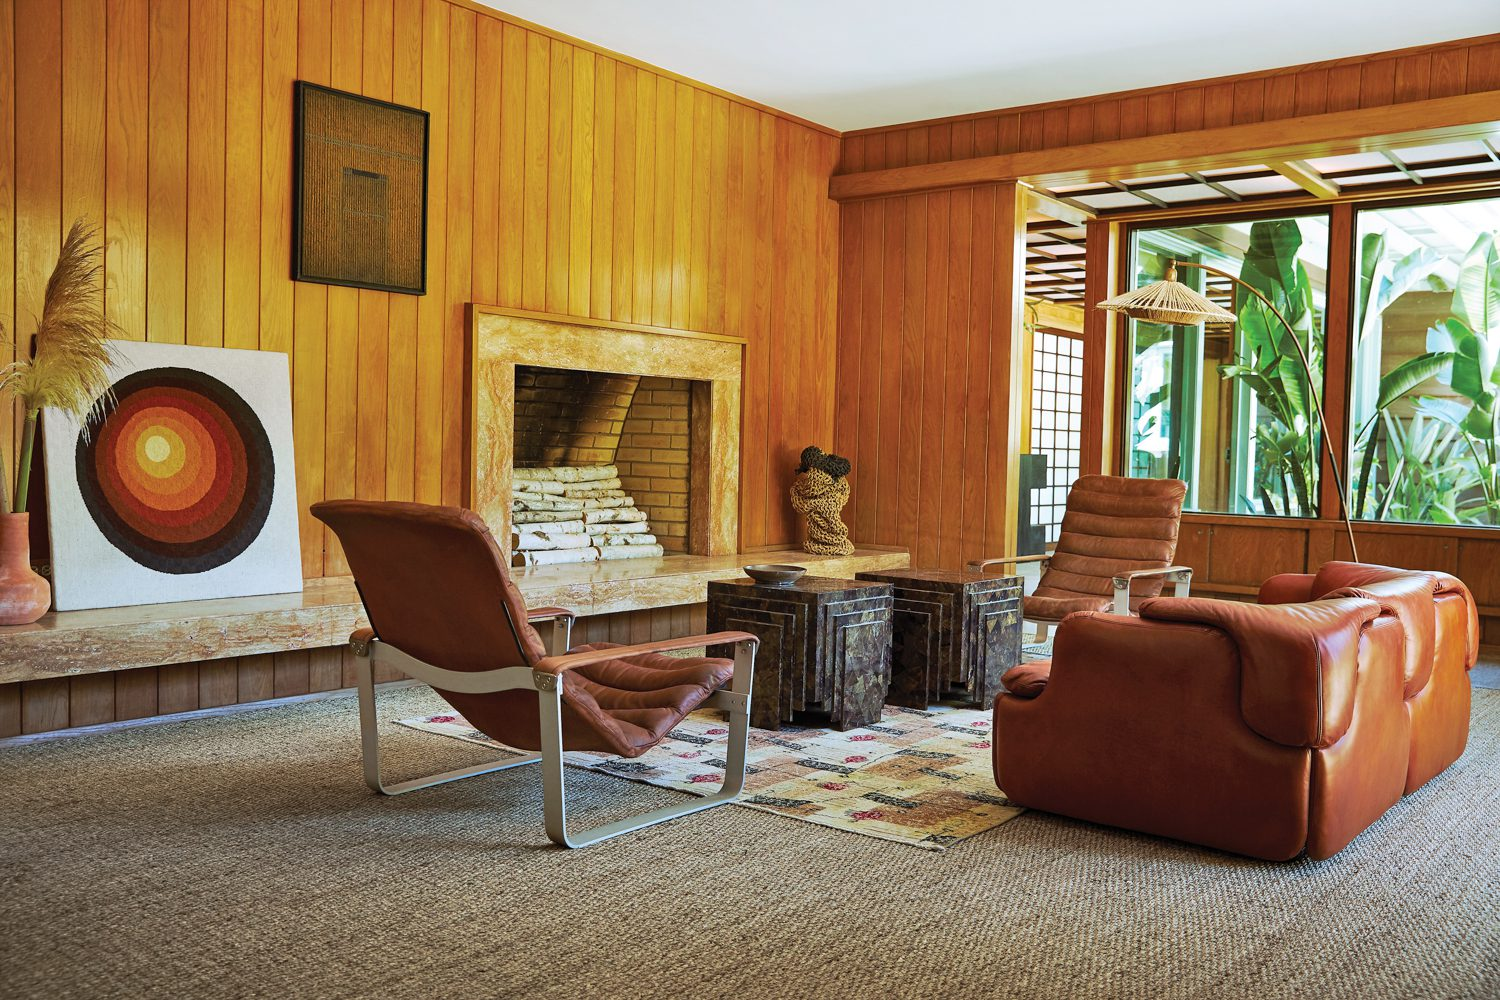 The family room's main seating vignette features unique finds like tortoise shell coffee tables and 1968 Pulkka lounge chairs by Ilmari Lappalainen.